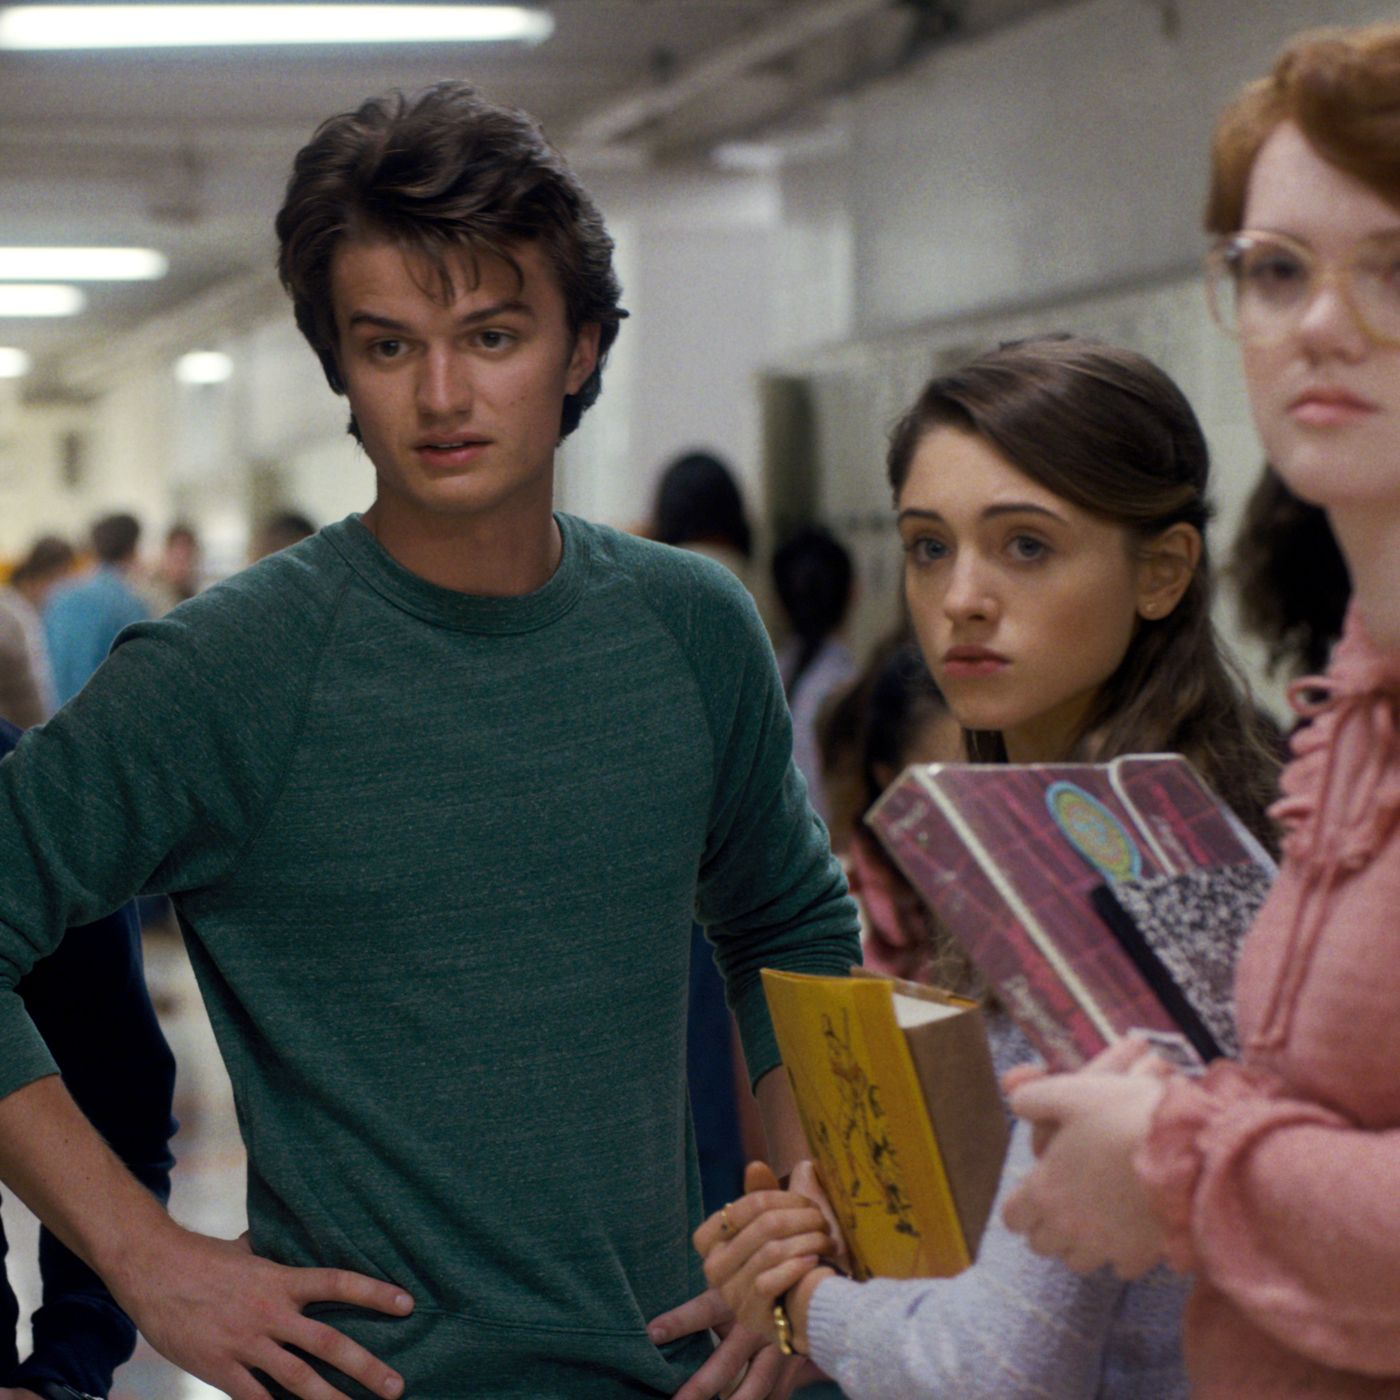 Stranger Things' treatment of Barb reveals the show's